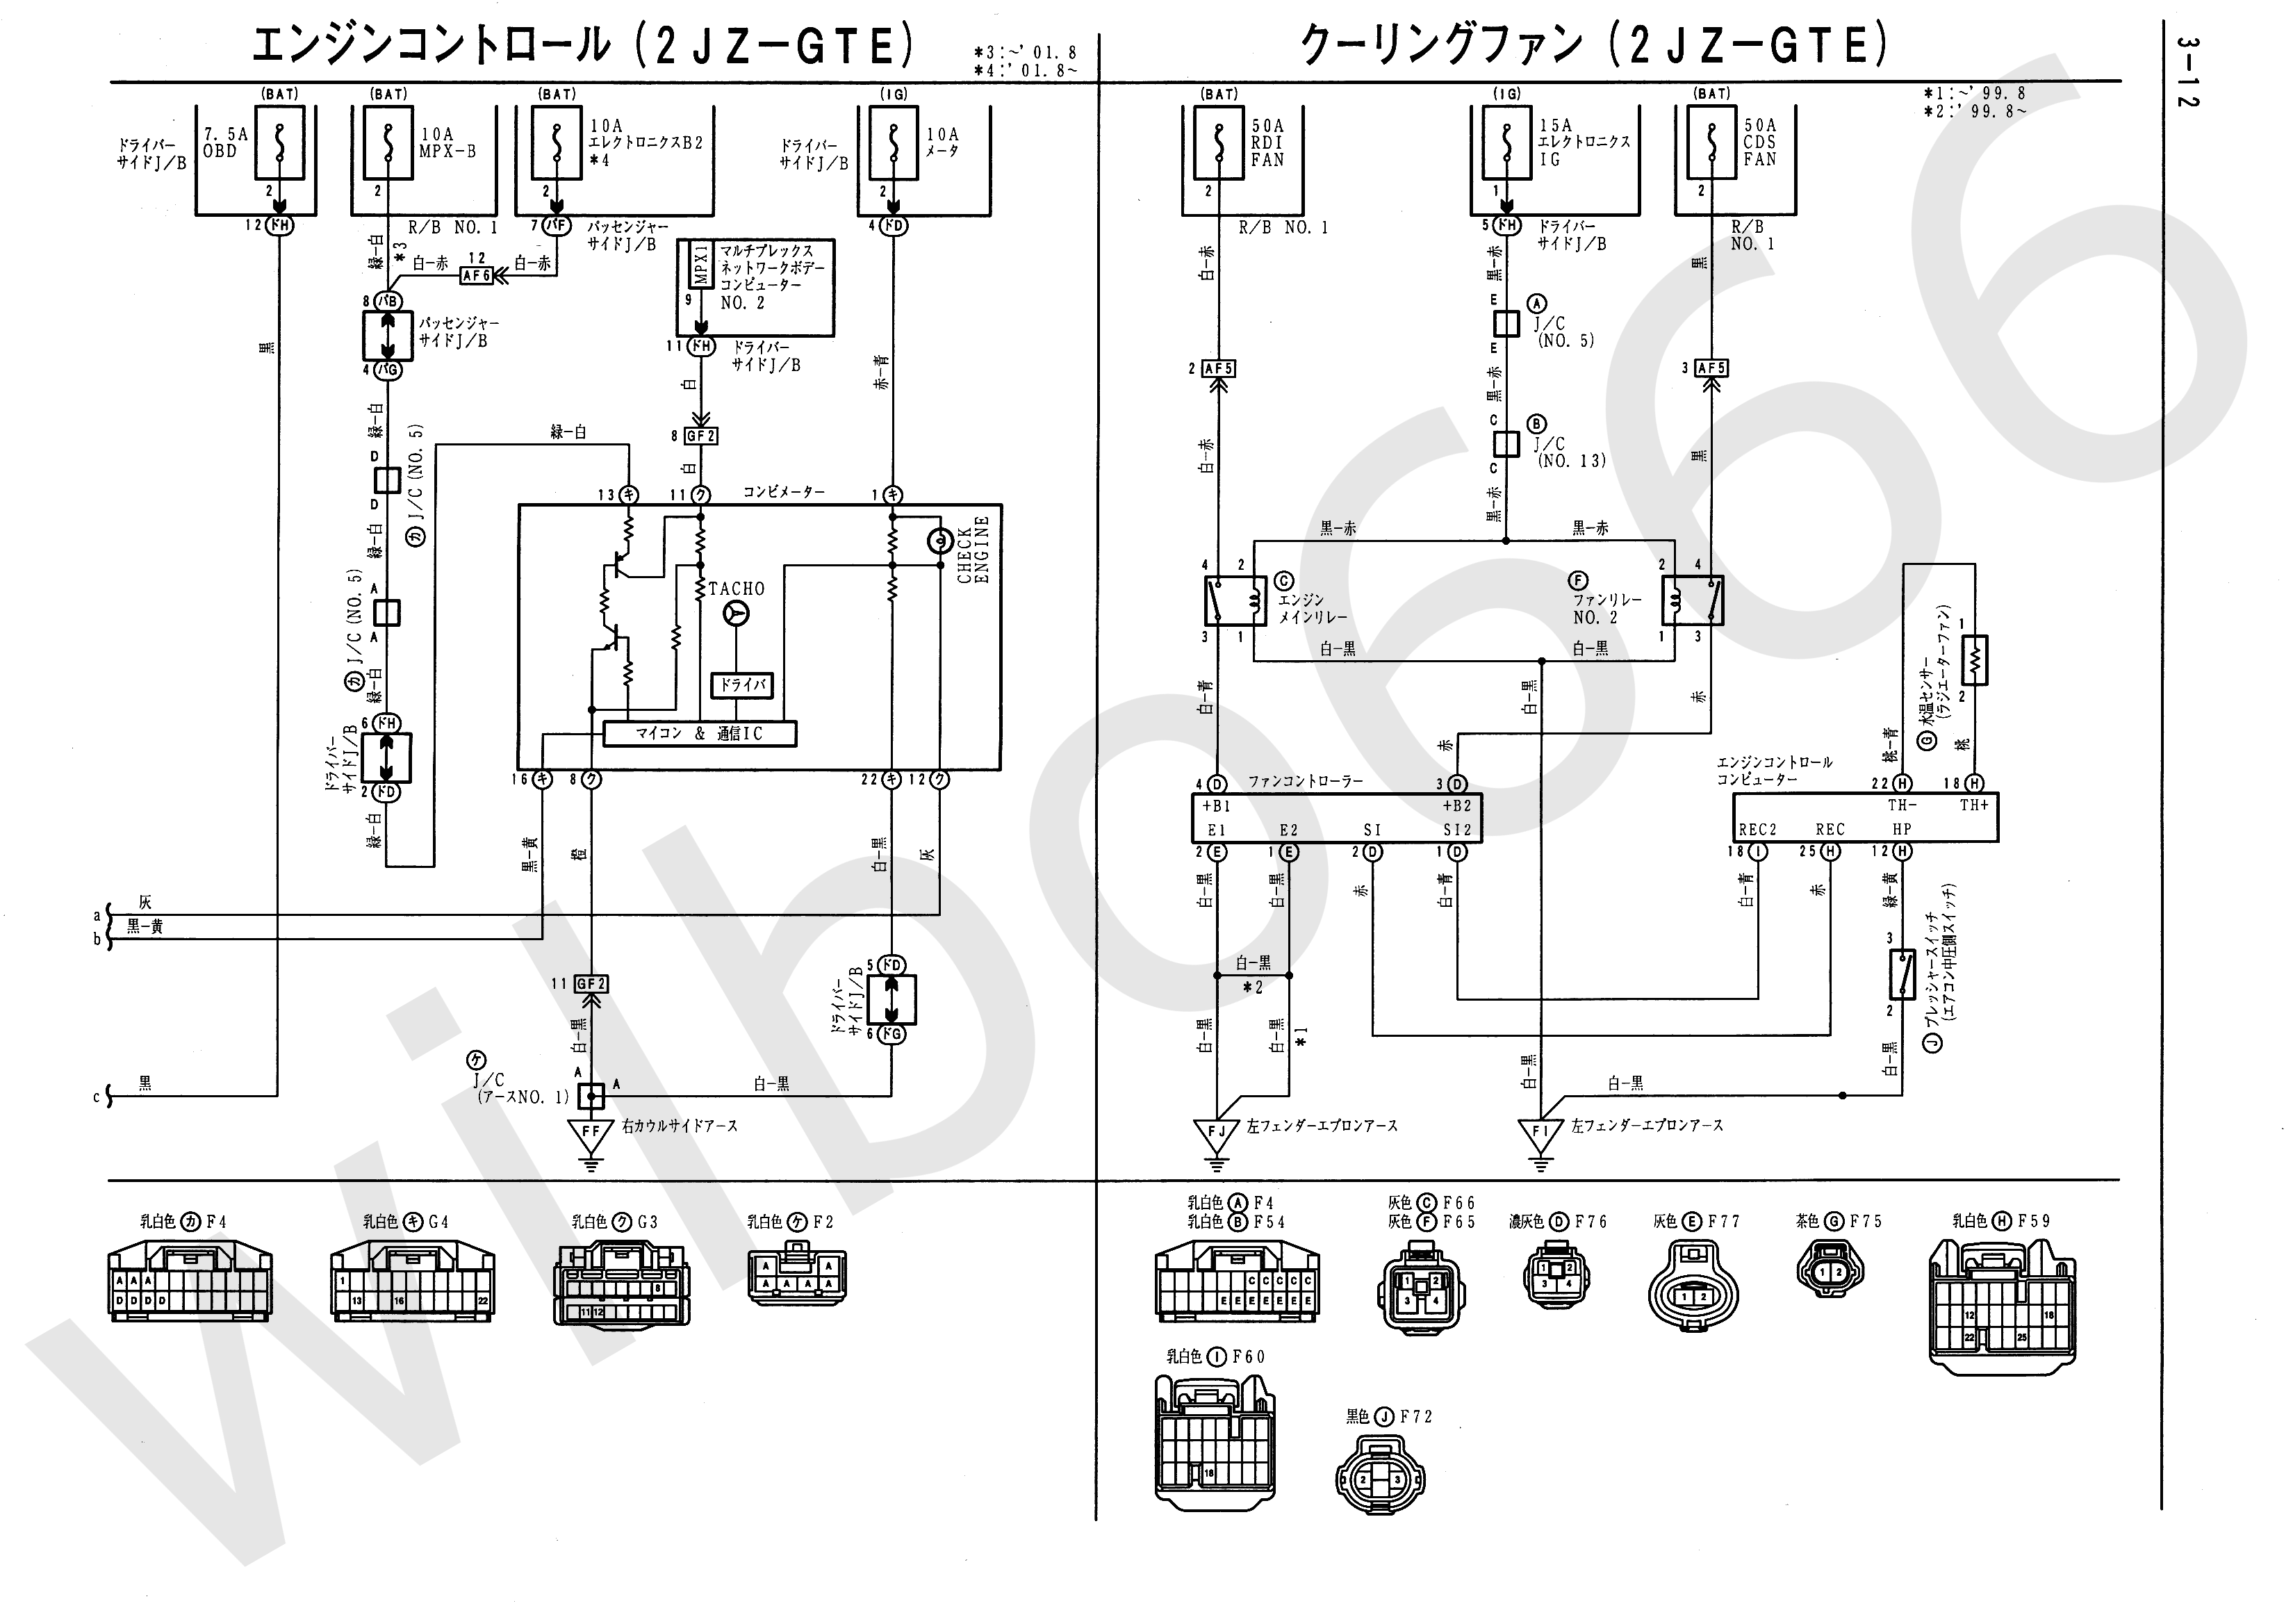 JZS161 Electrical Wiring Diagram 6748505 3 12 wilbo666 2jz gte vvti jzs161 aristo engine wiring 2jzgte vvti wiring harness at suagrazia.org